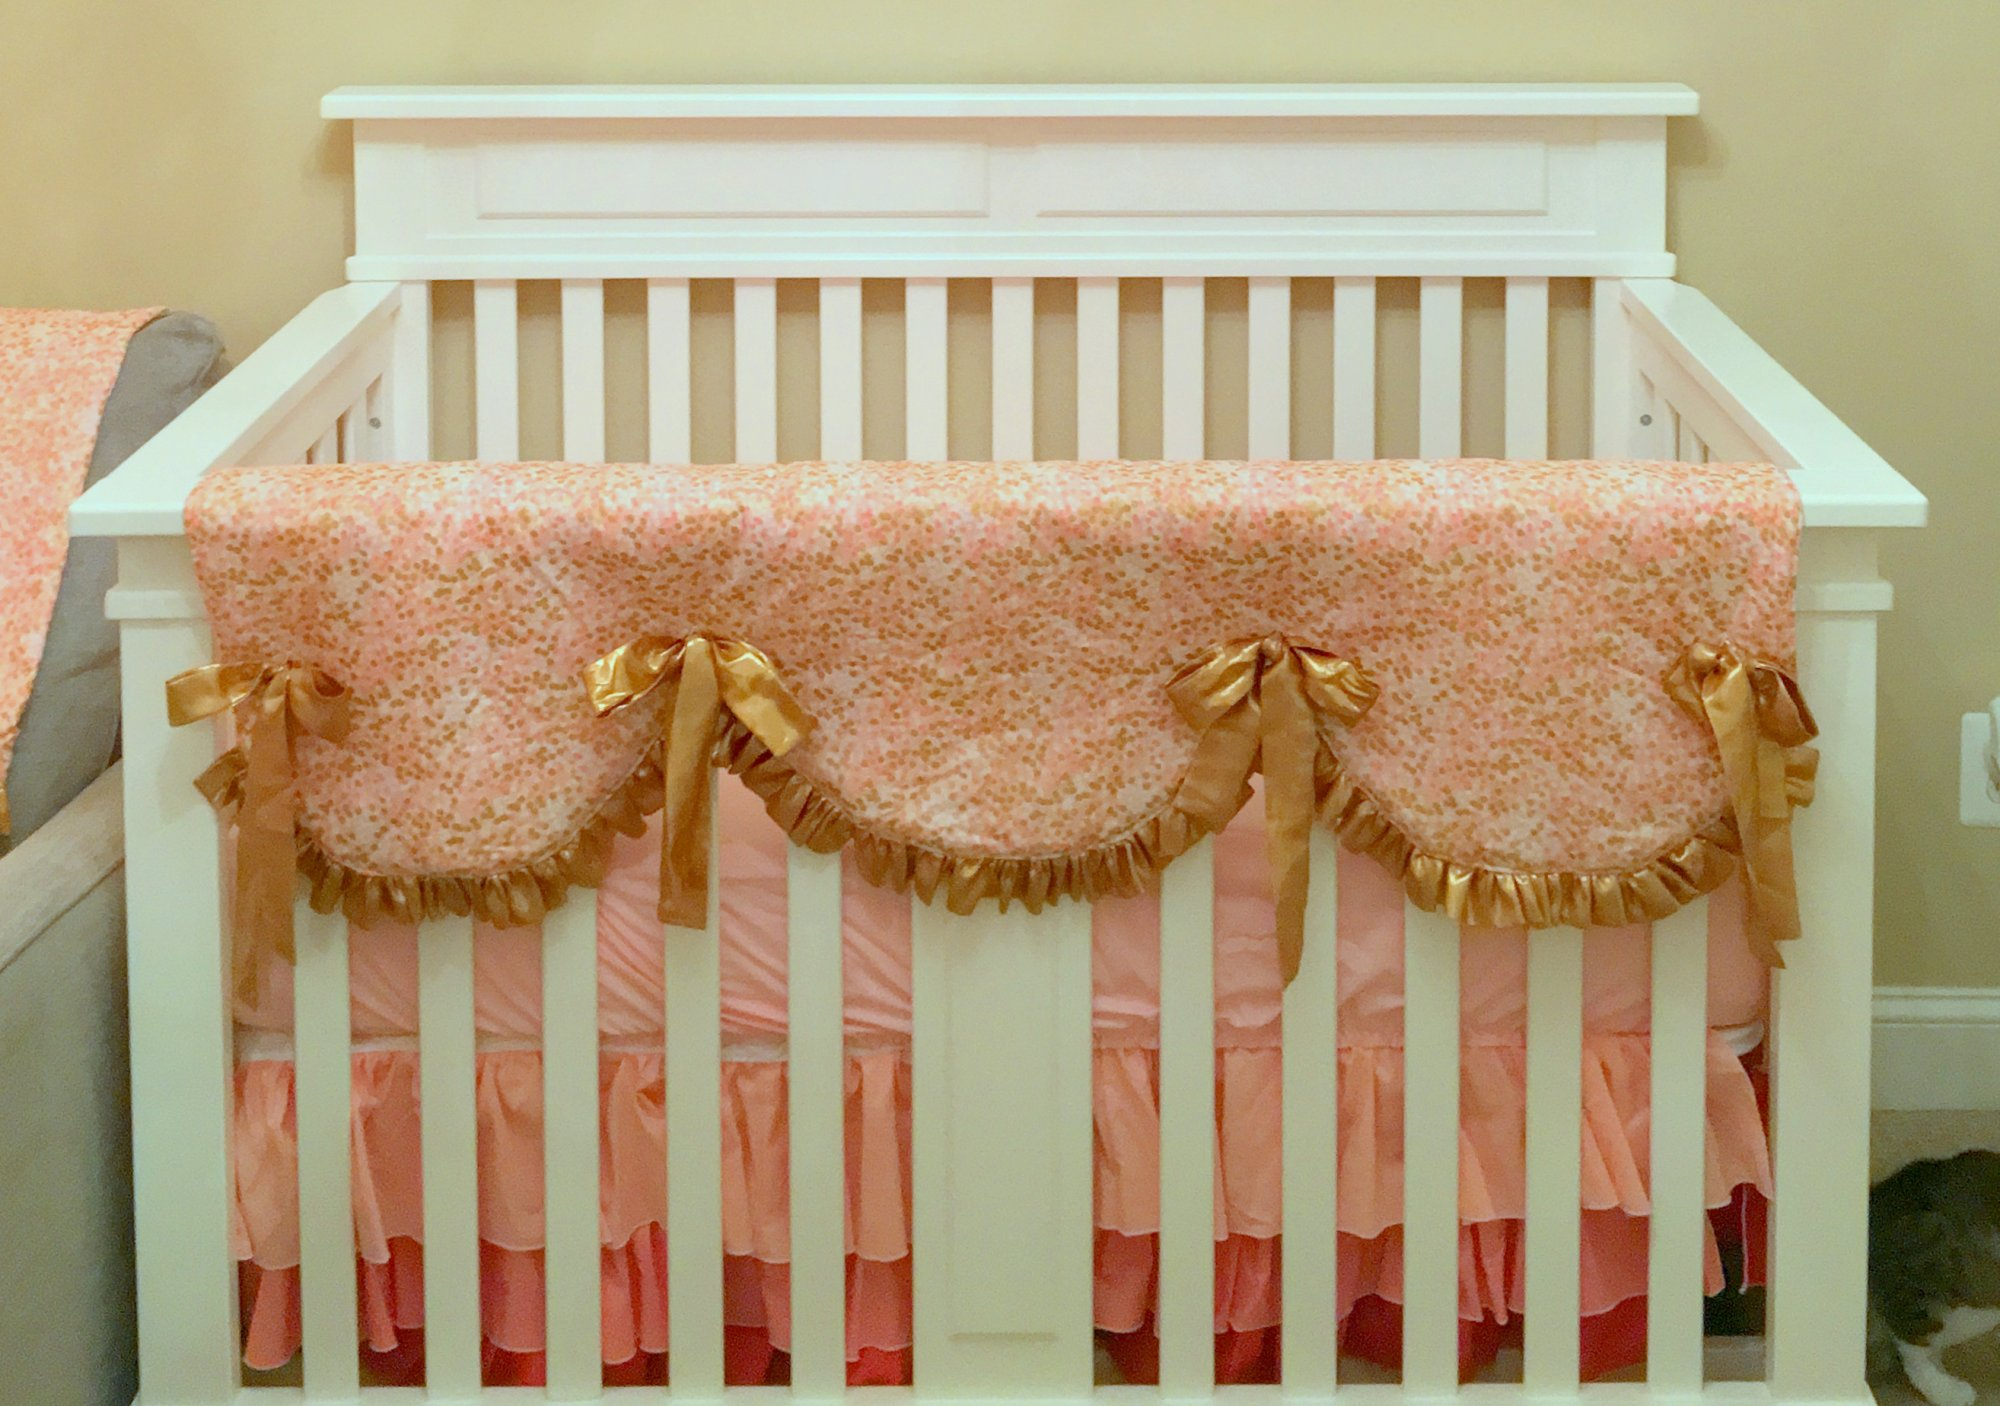 Extraordinary Curved Rail Crib Rail Cover Pattern Free Scalloped Rail Cover Tiered Skirt Coral Pink Brambleberry Copy 20160502153408 Crib Rail Cover baby Crib Rail Cover